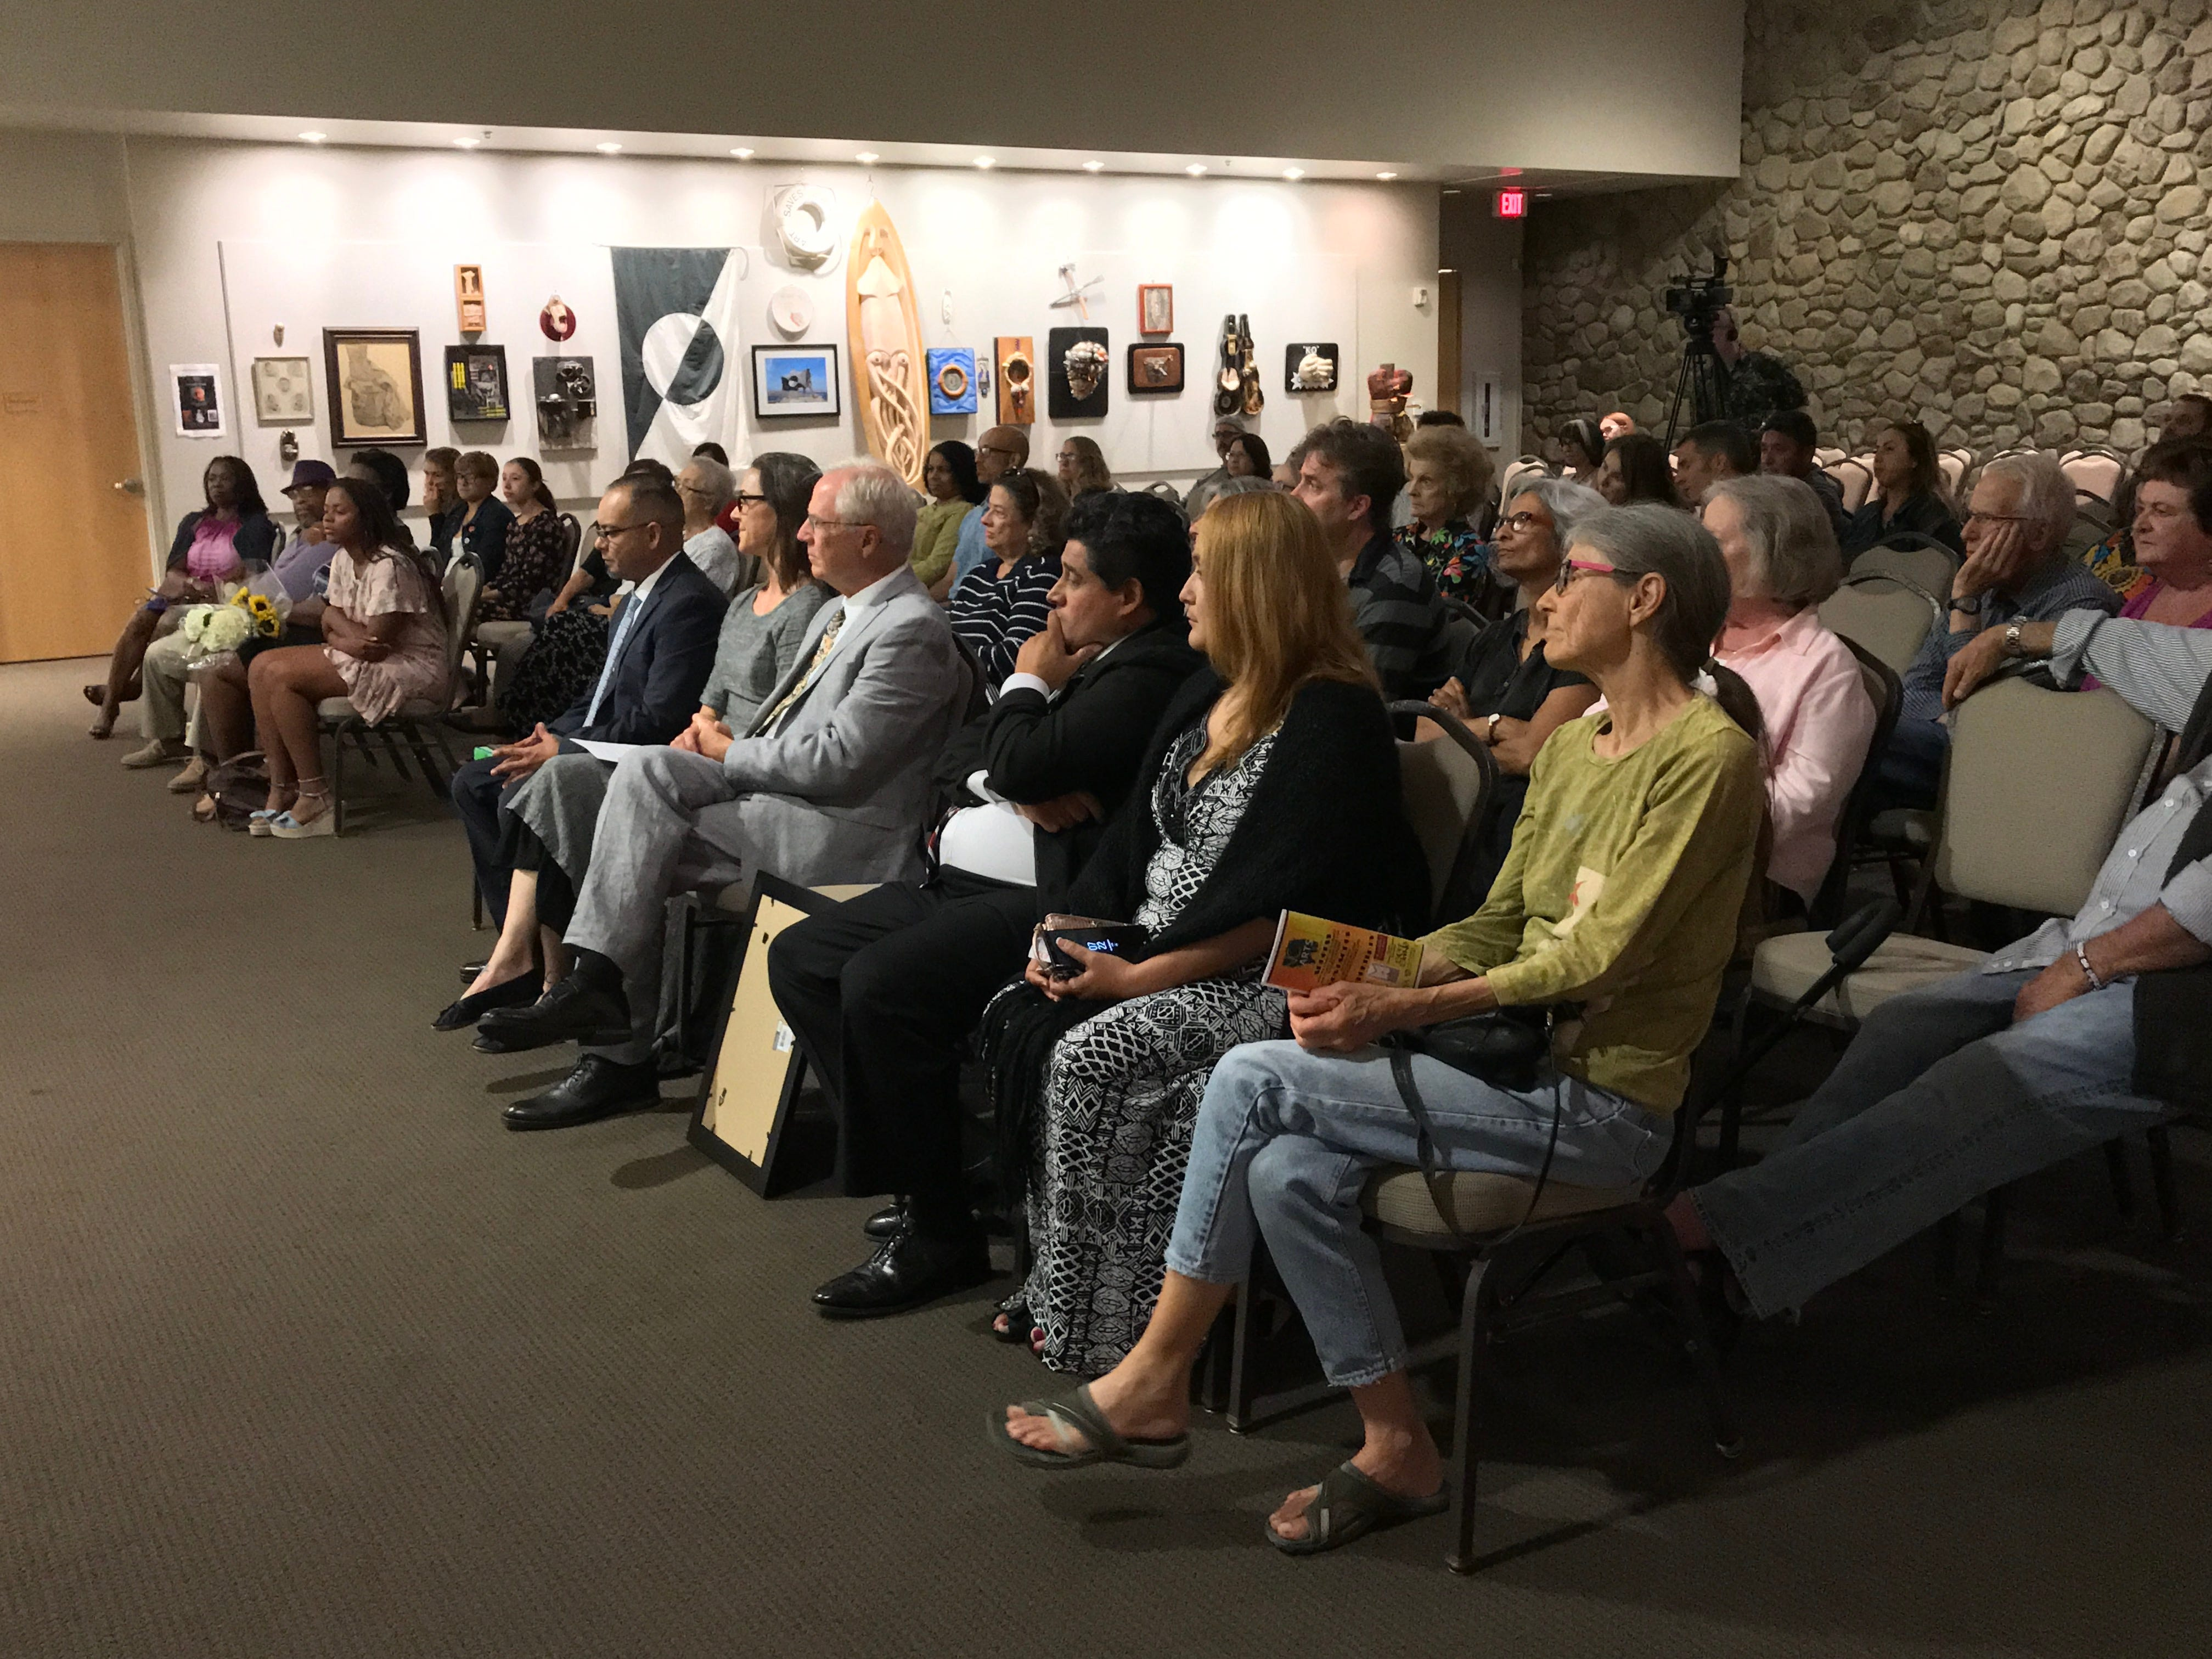 The audience listens to young people reading poetry during the inauguration of the first youth poet laureate at the Museum of Ventura County.